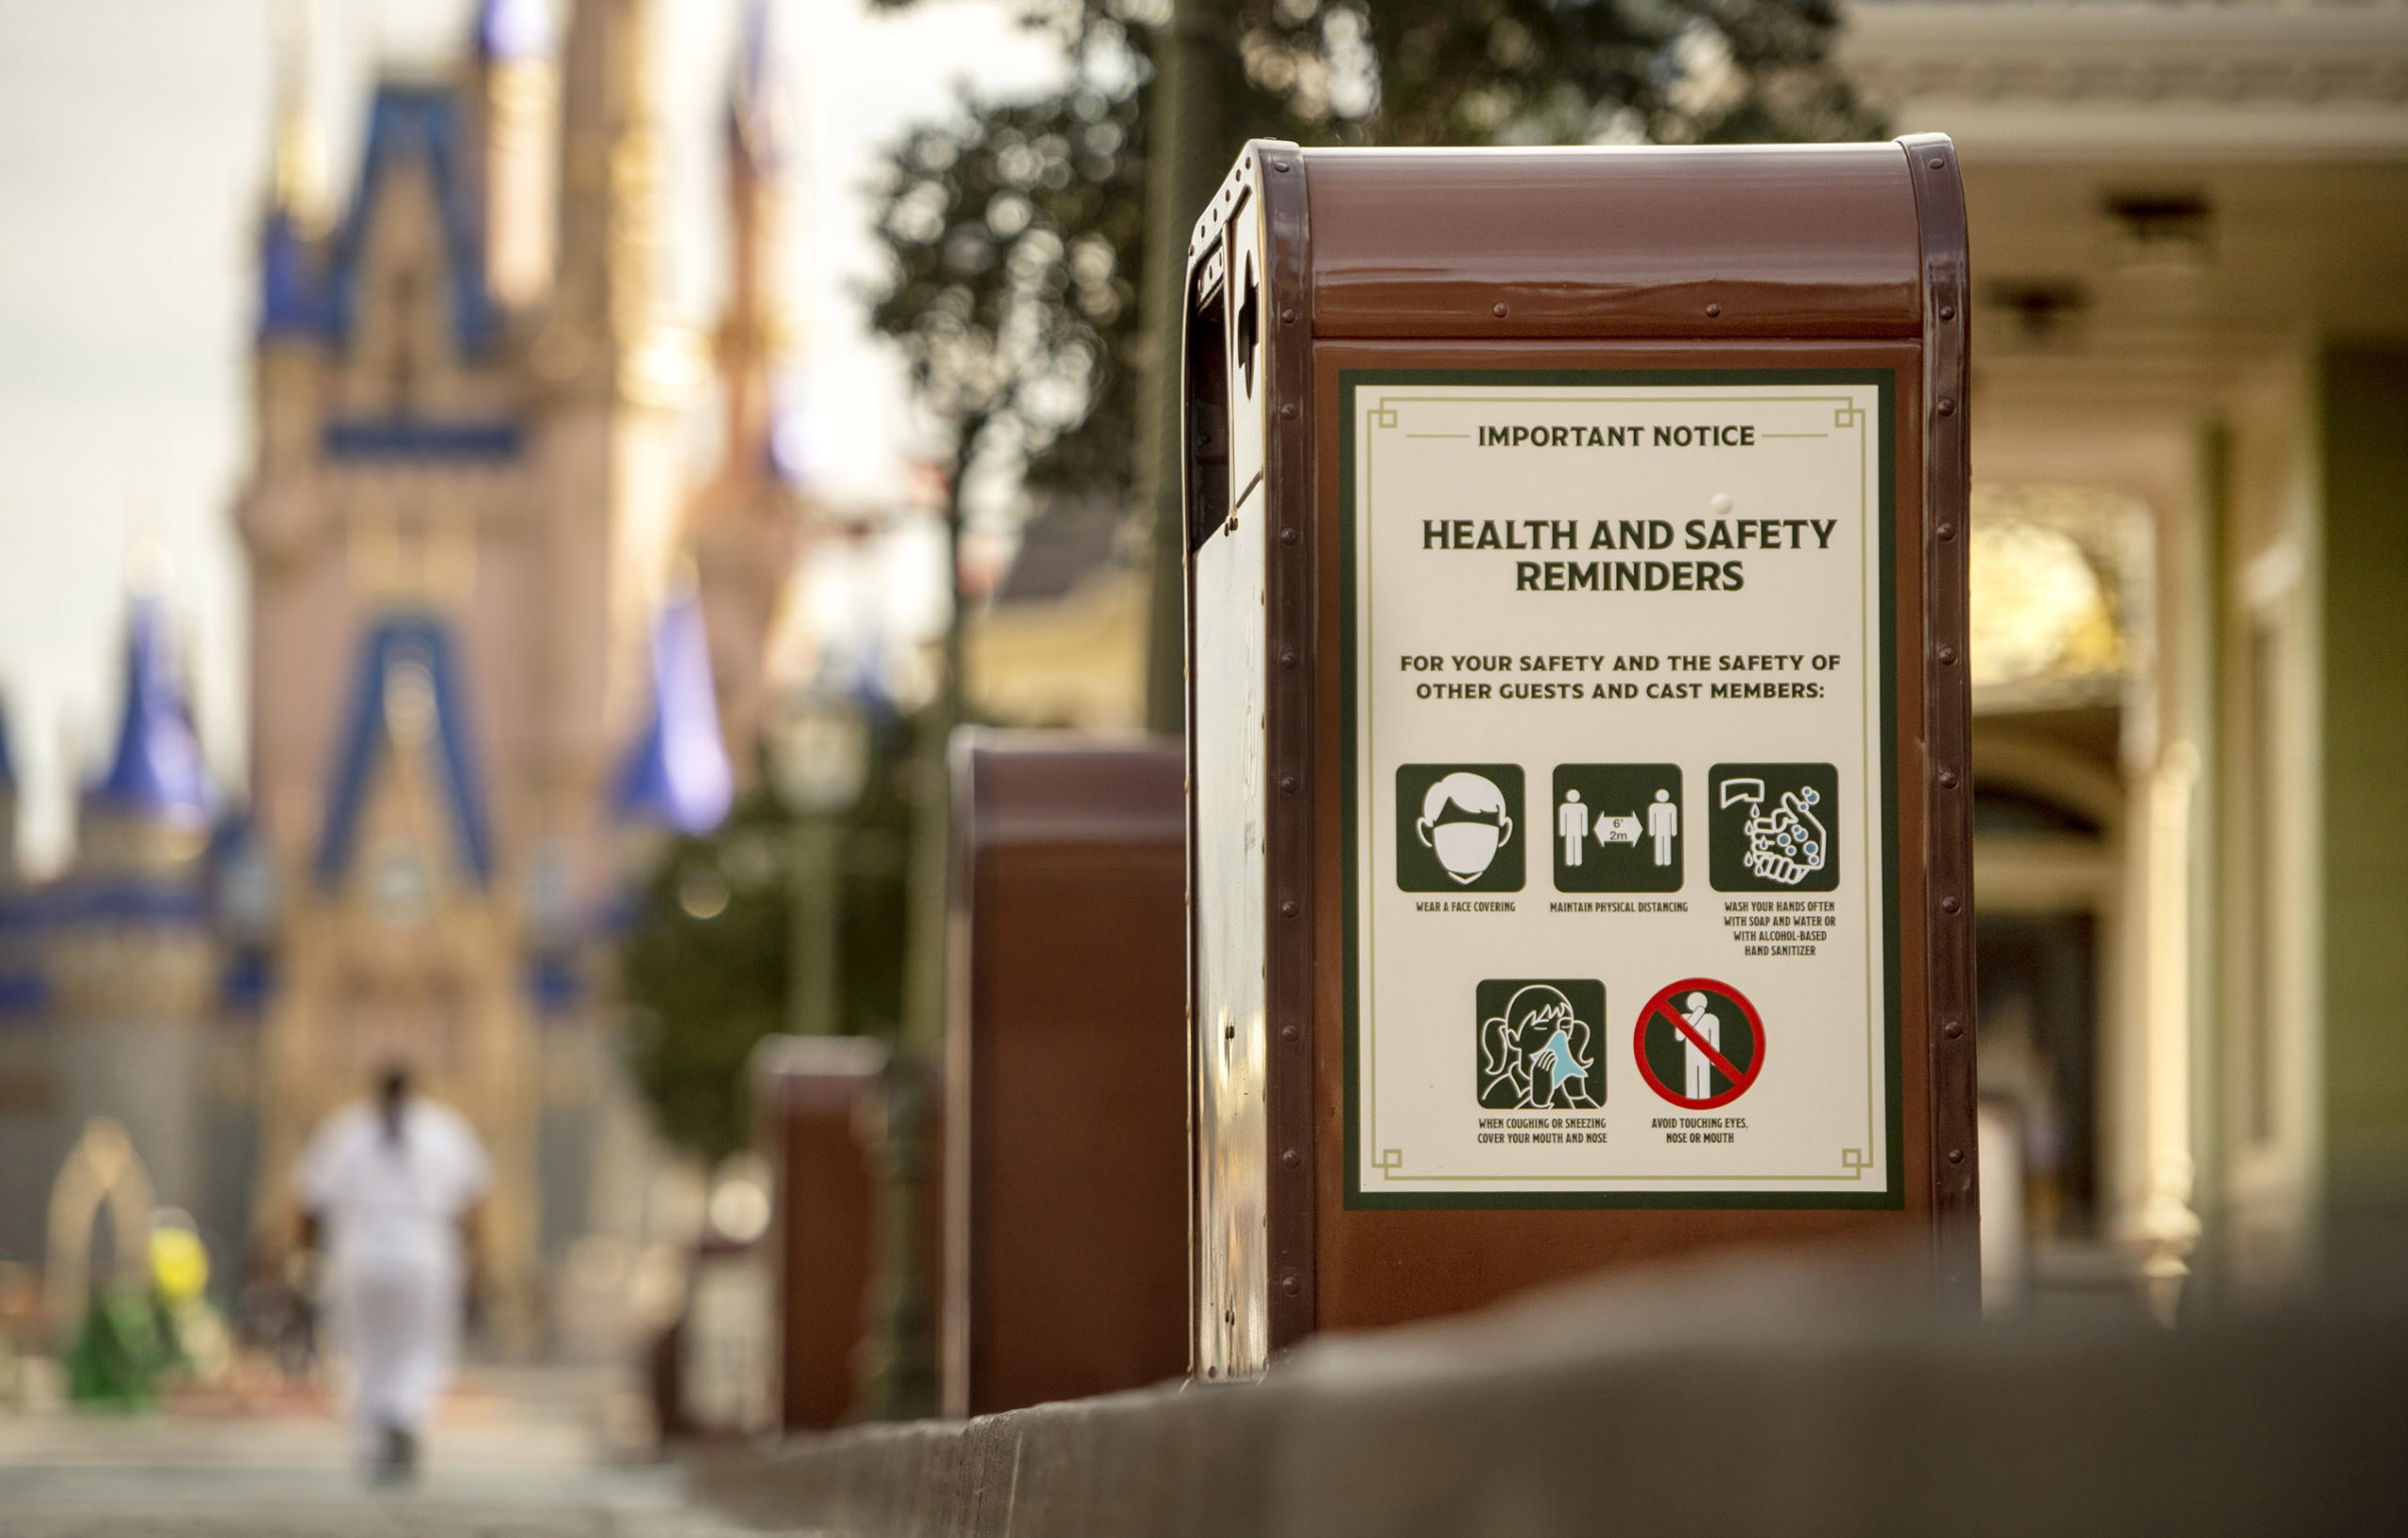 Disney World Health and Safety Regulations